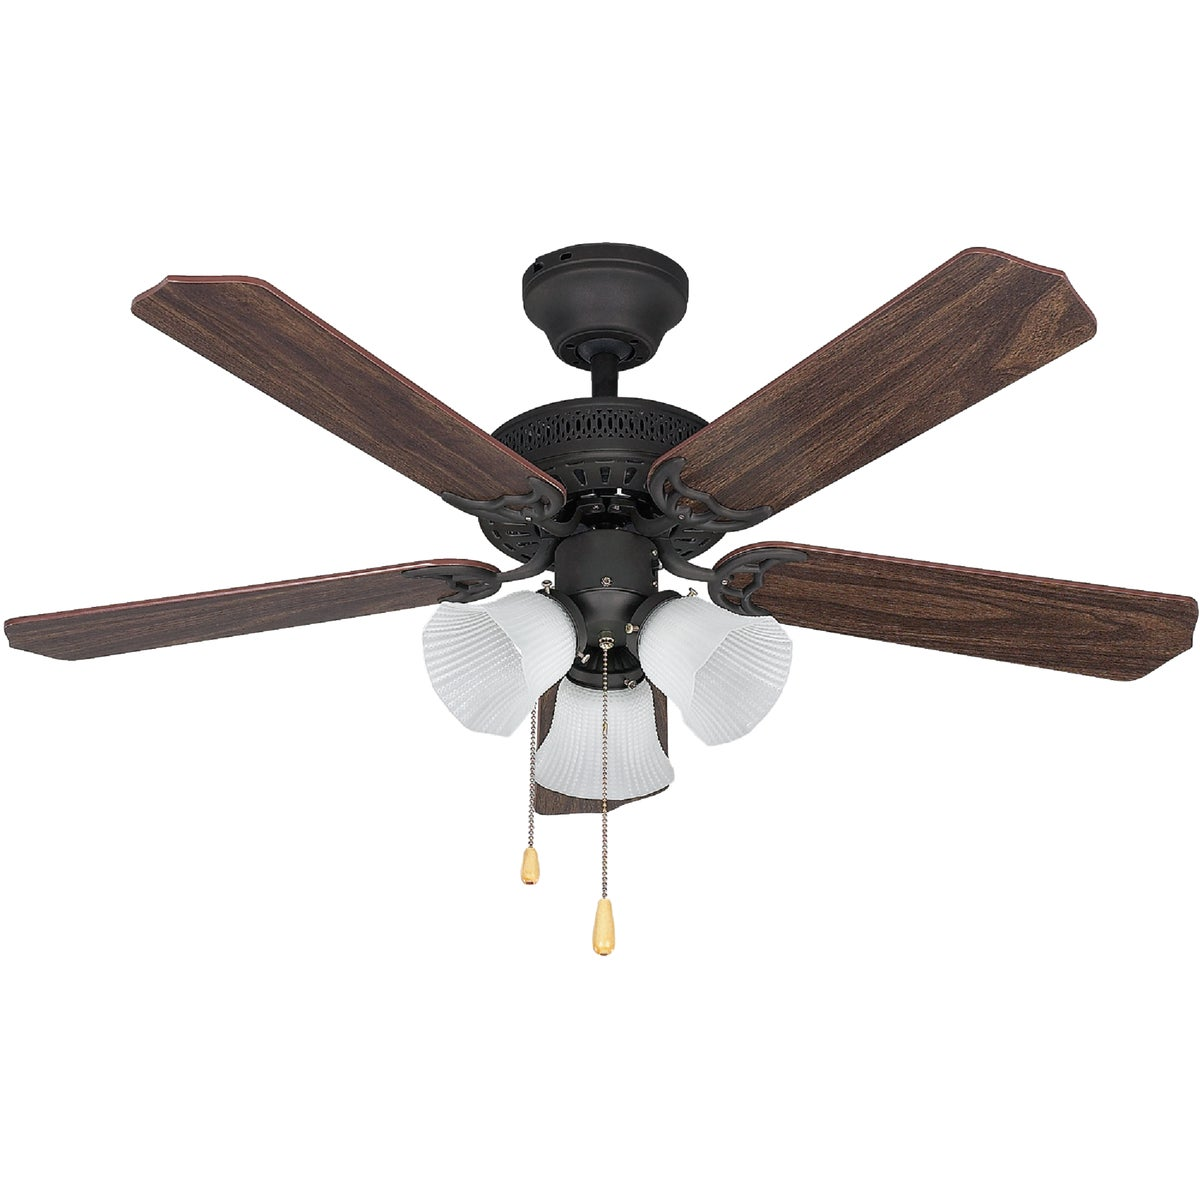 "42""TRAD ORB CEIL FAN - CF42TRA50RB by Canarm Gs"